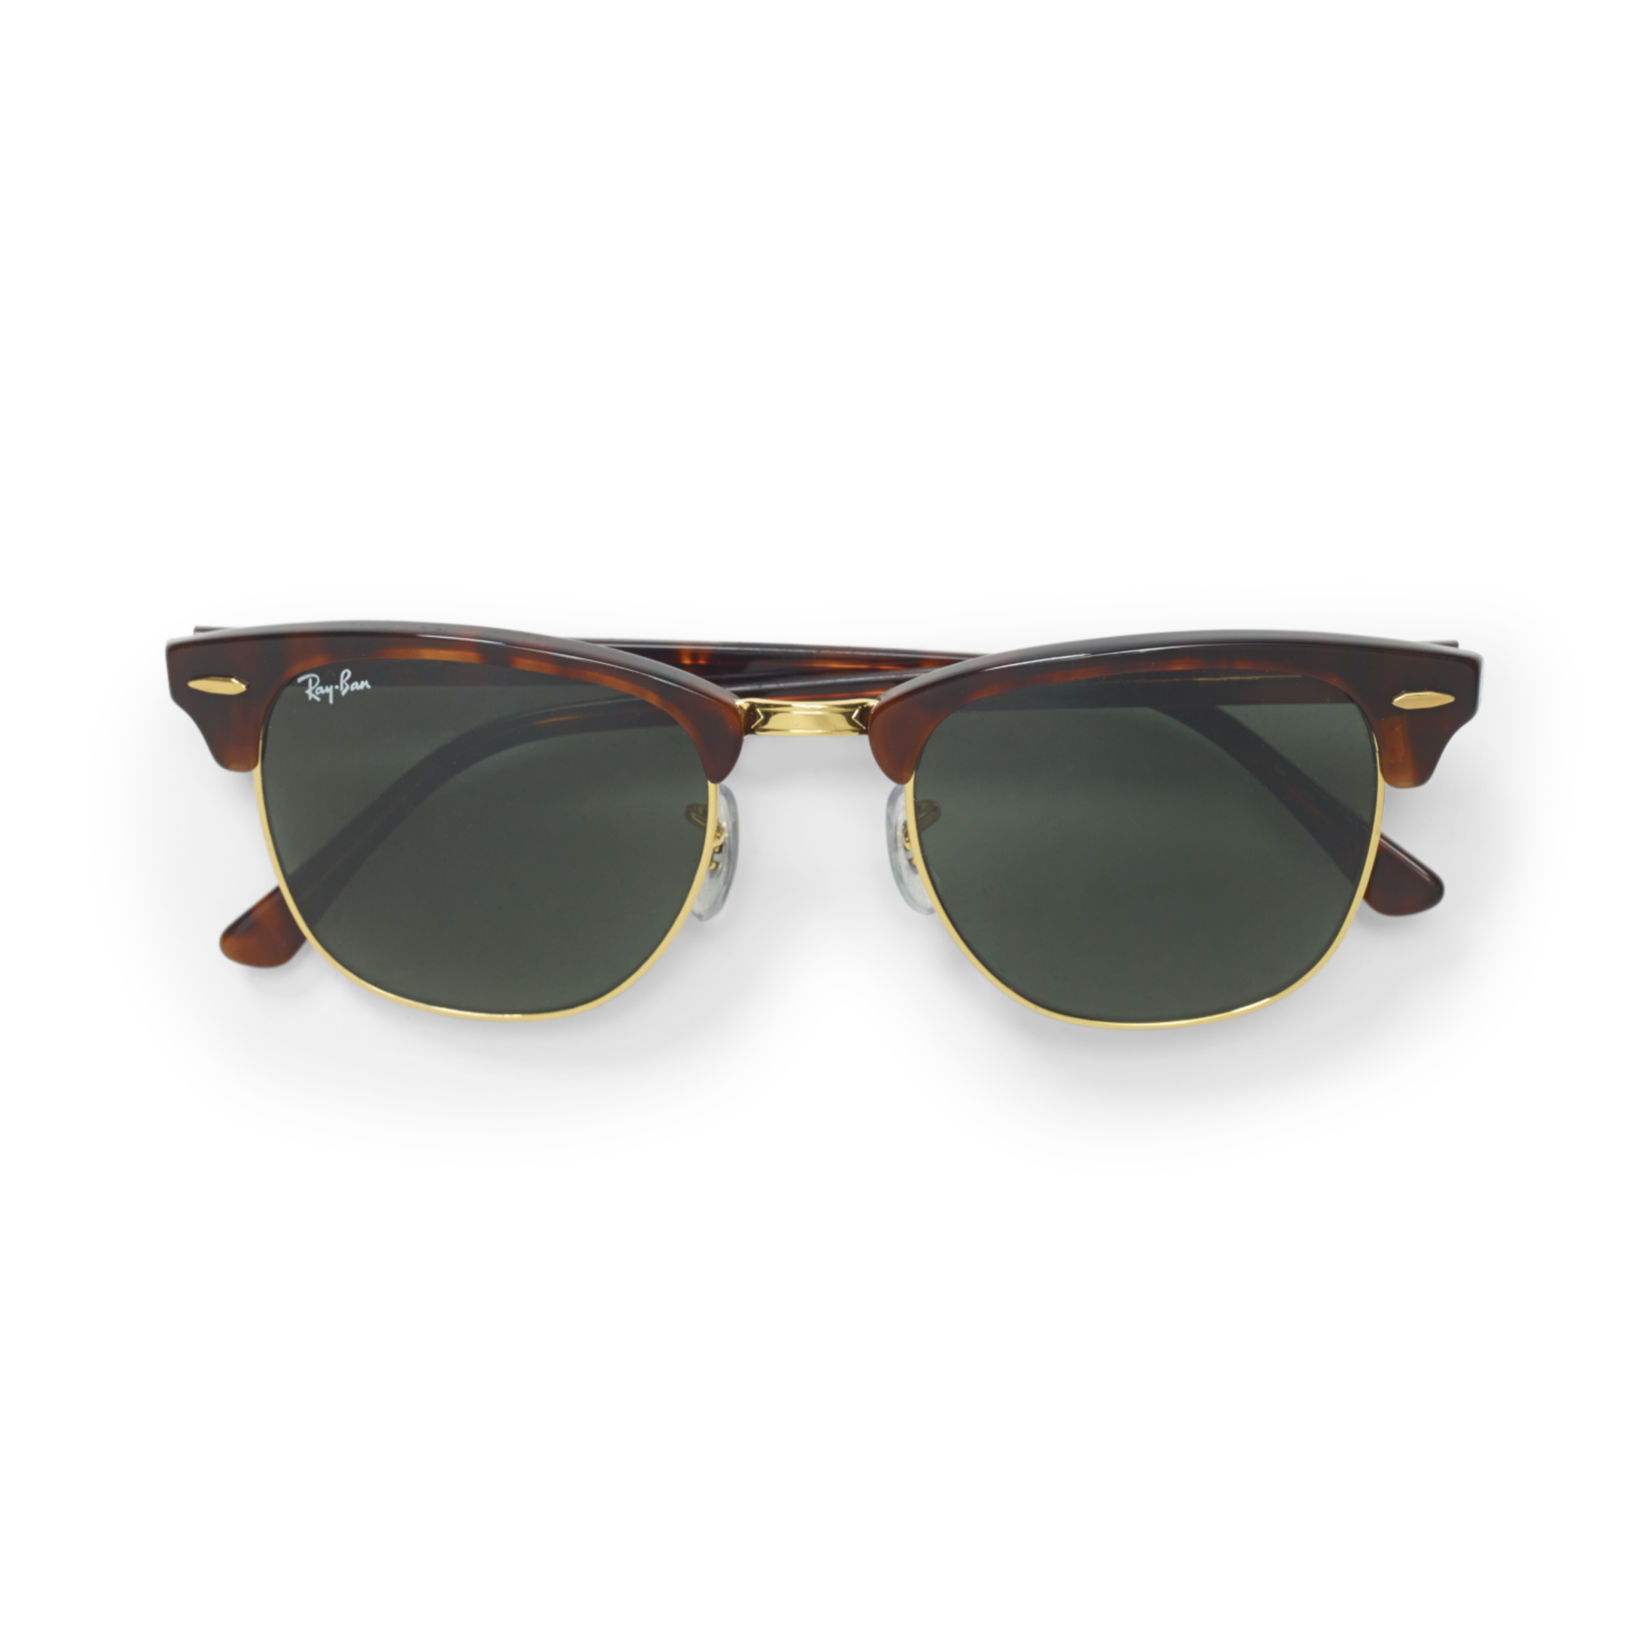 3028bcc6a07 Ray Ban Clubmasters Polarized